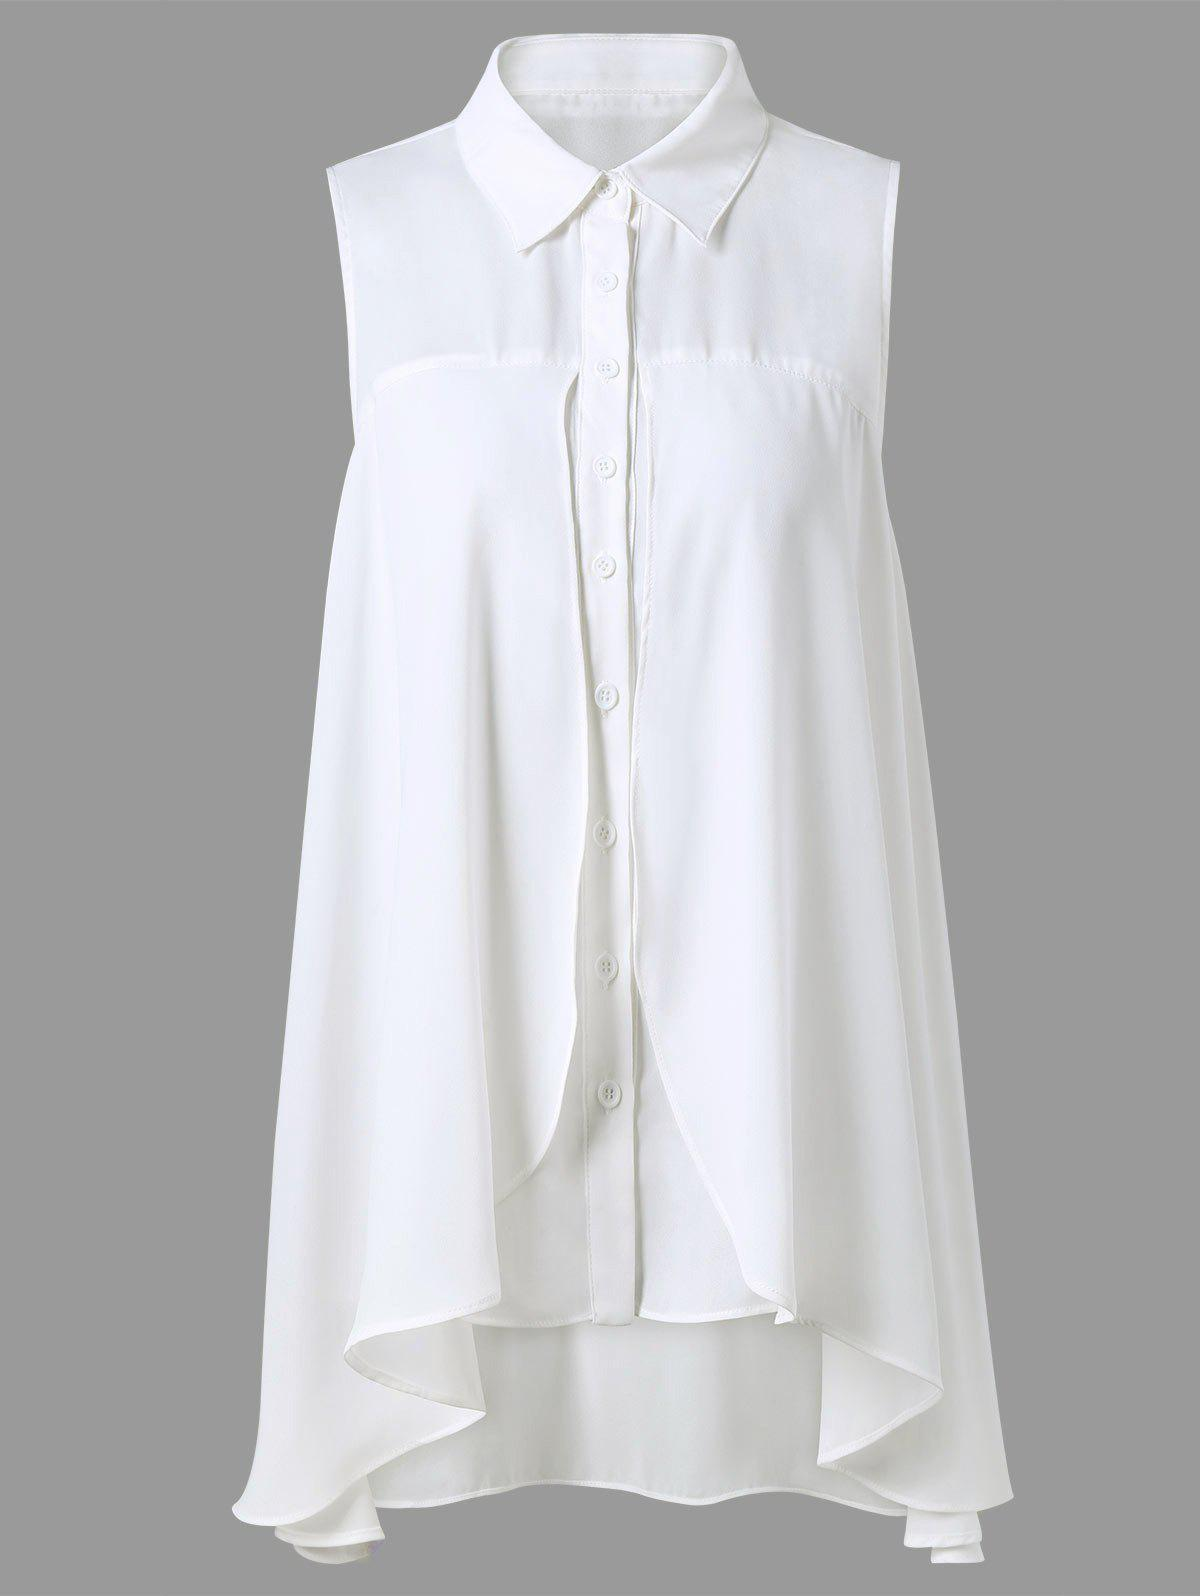 Asymmetrical Button Up Sleeveless Blouse button up check blouse